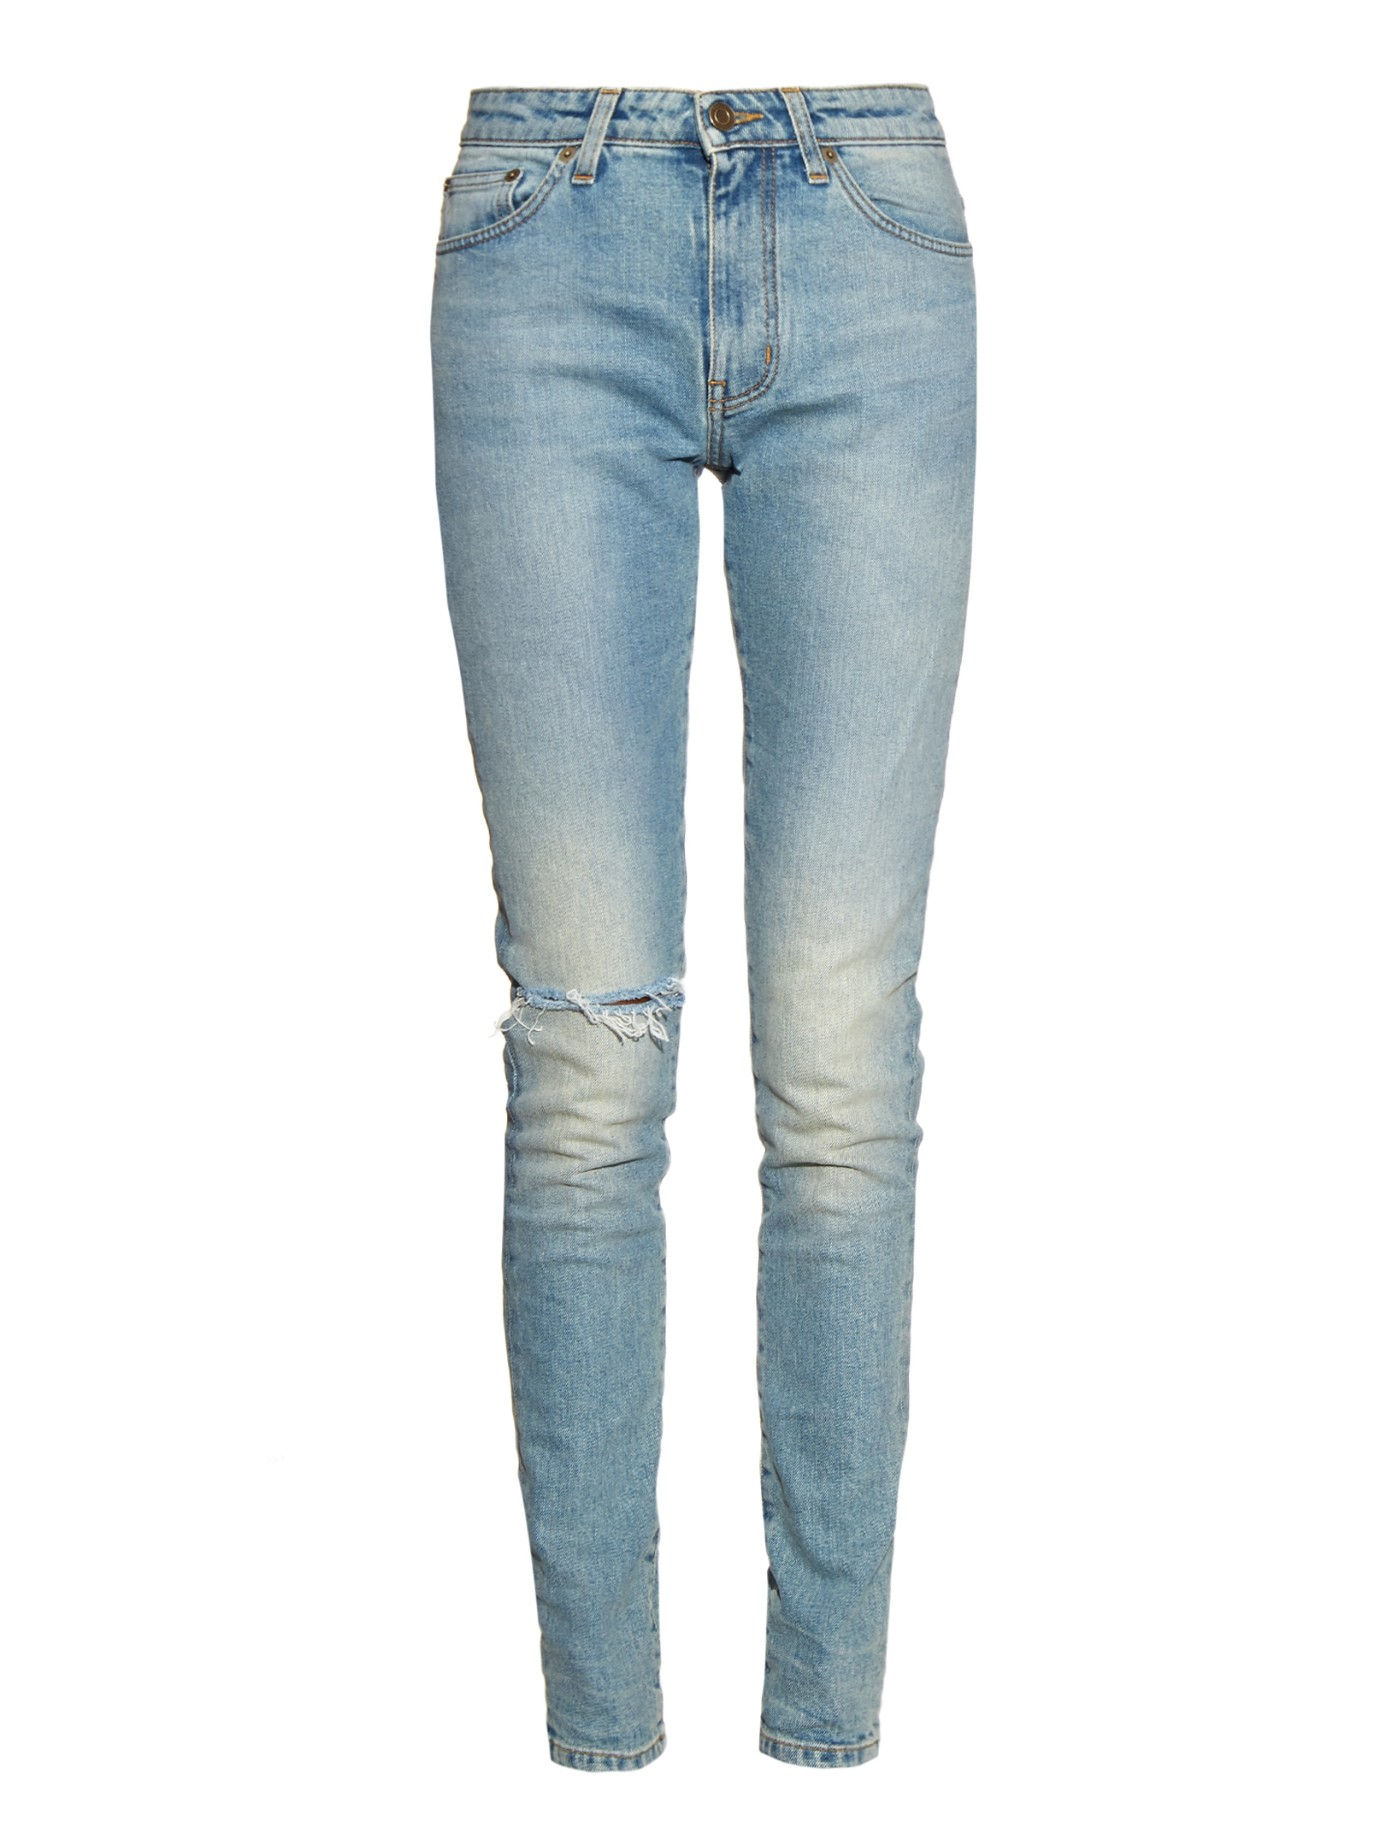 Saint laurent High-rise Distressed Skinny Jeans in Blue   Lyst